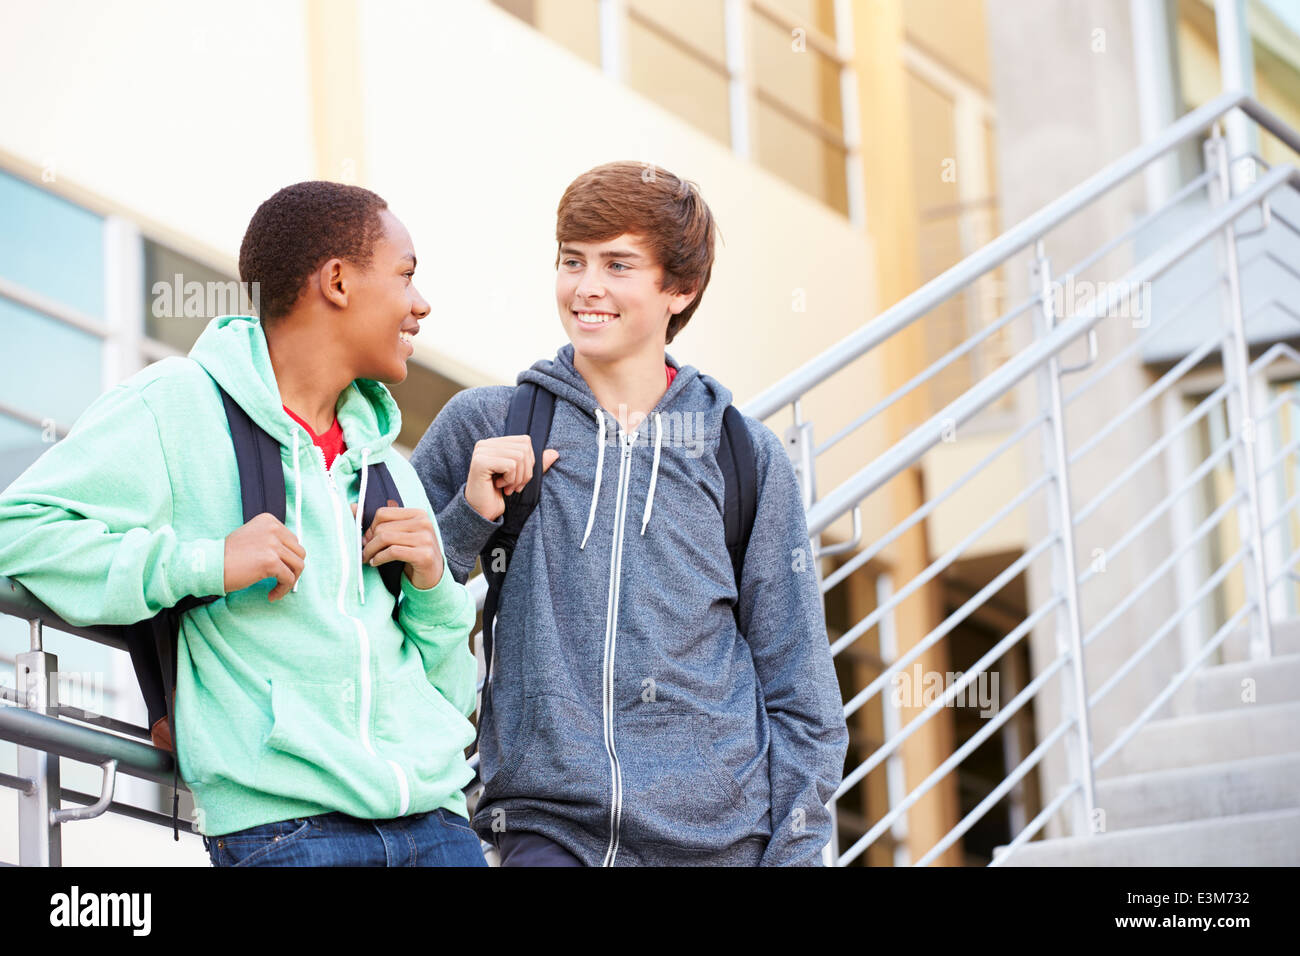 Two Male High School Students Standing Outside Building - Stock Image